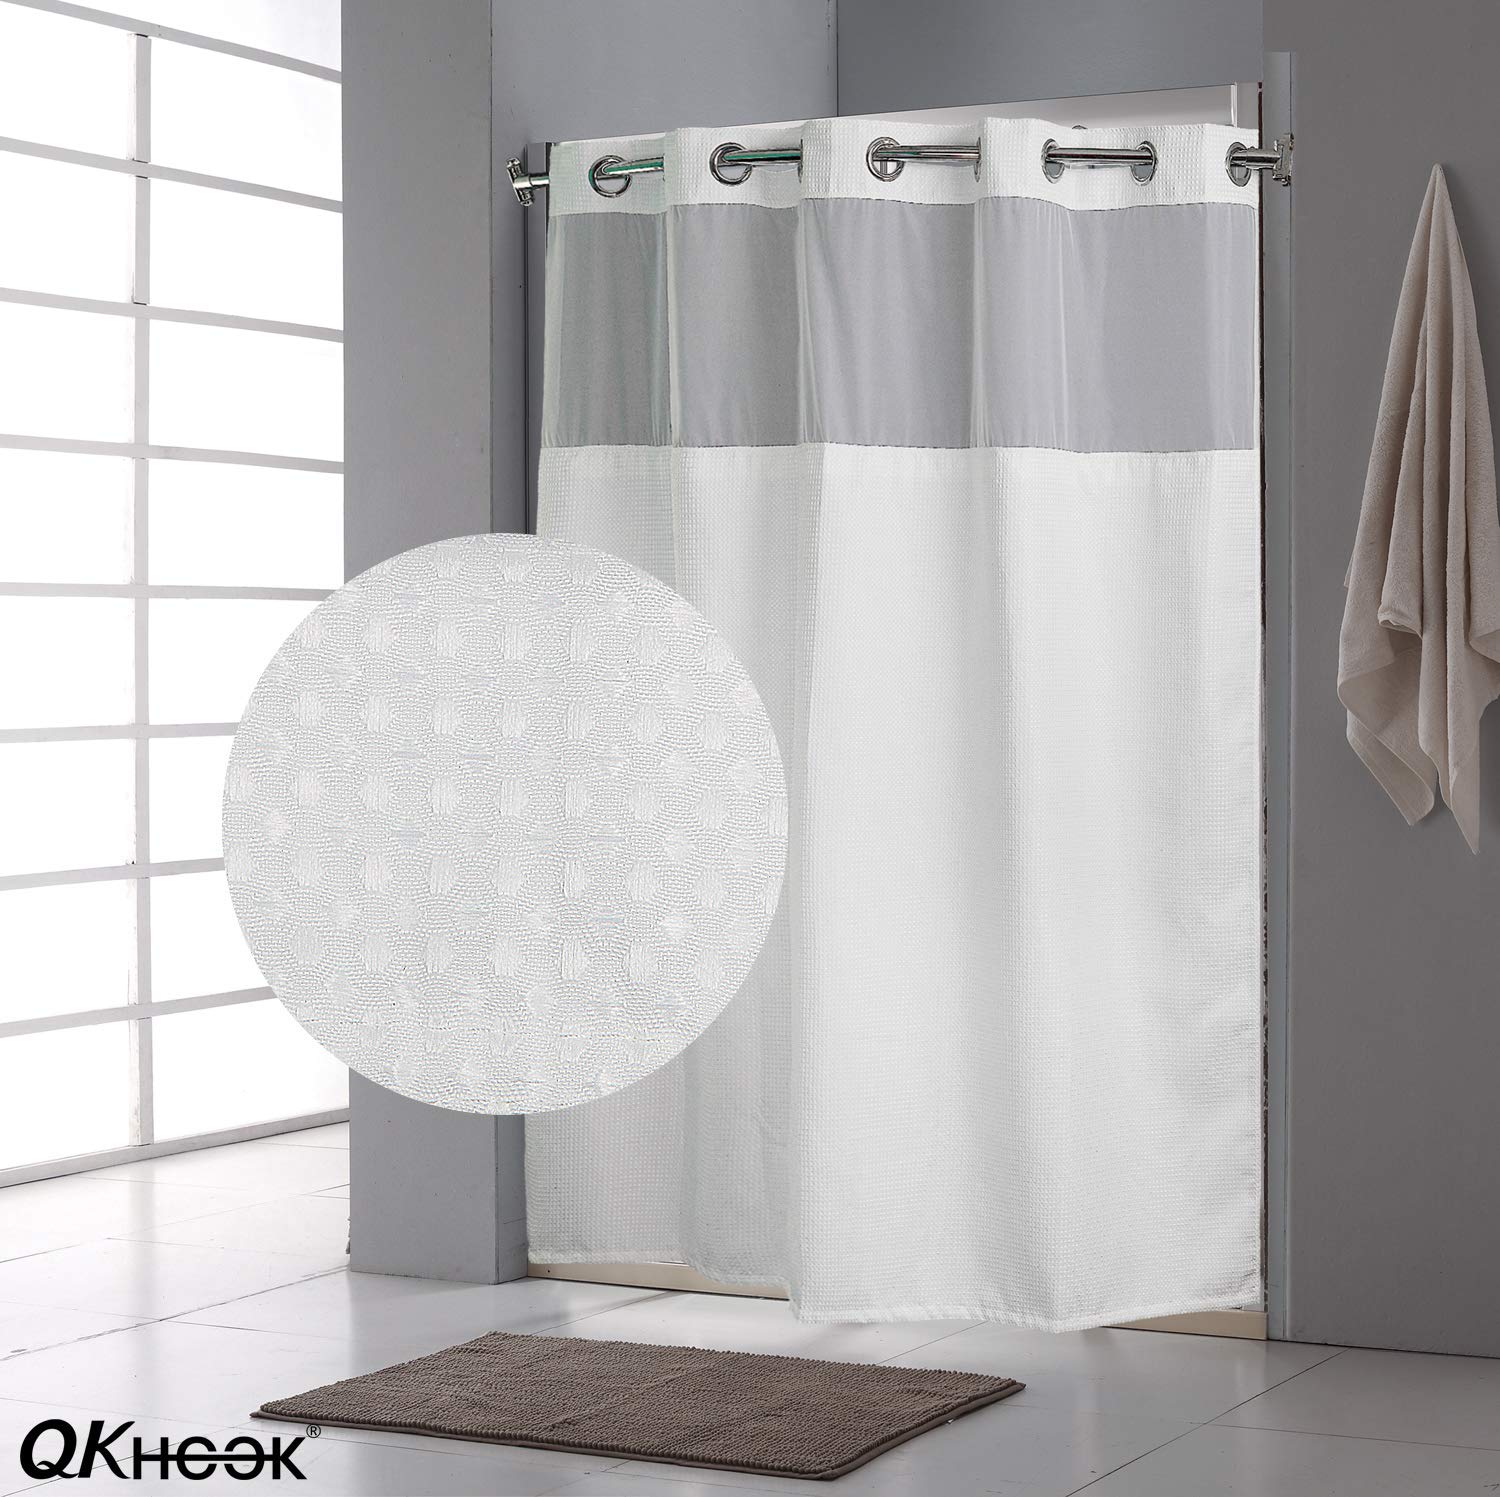 qkhook hookless shower curtain with snap in liner 1 pack 71x74 inches mildew resistant fabric waffle water repellent and antibacterial walmart com